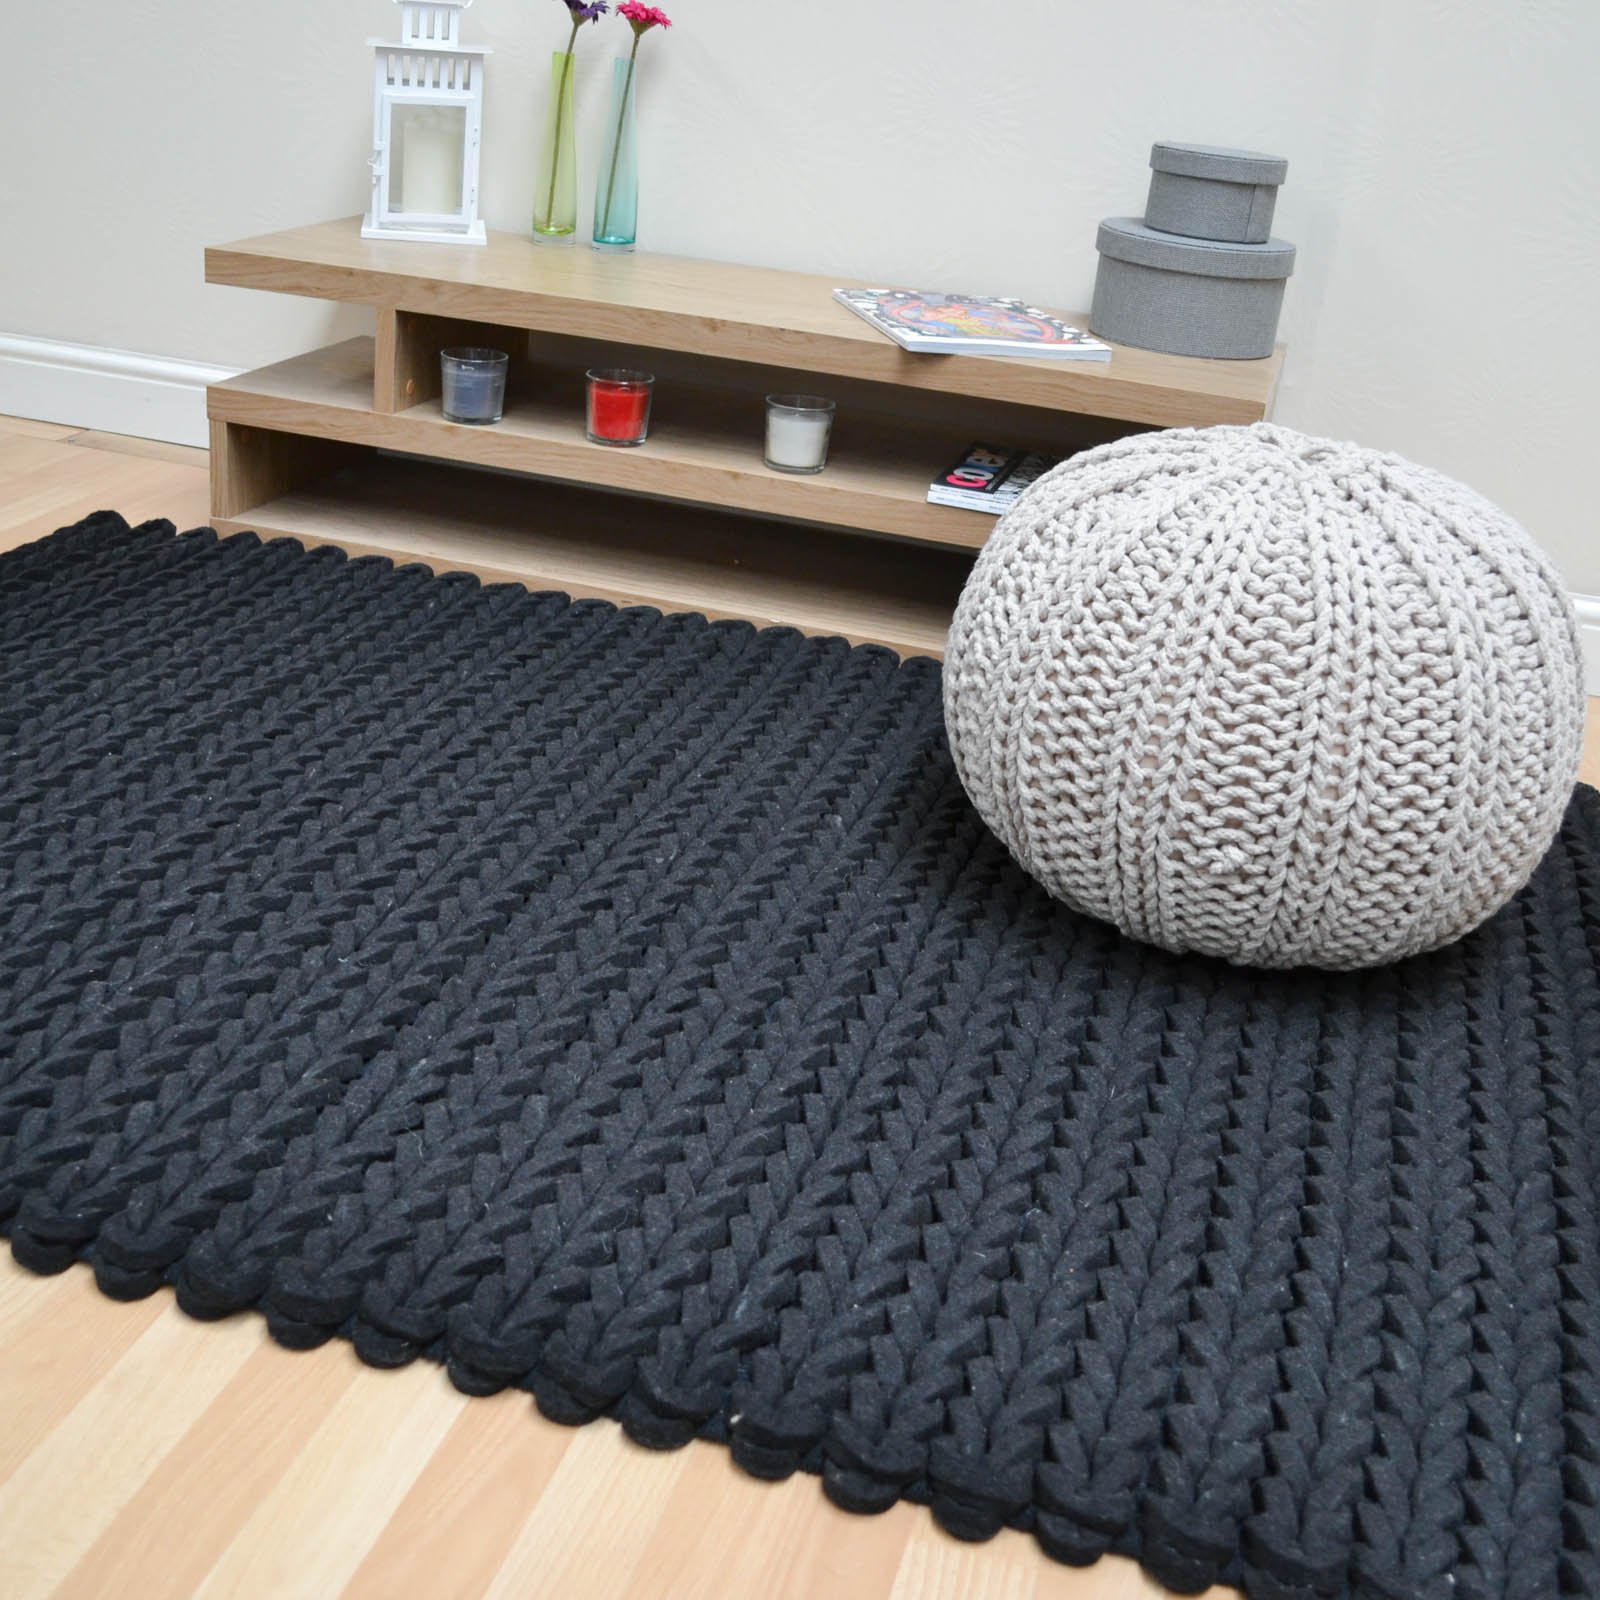 Helix Felted Wool Braid Rugs in Charcoal